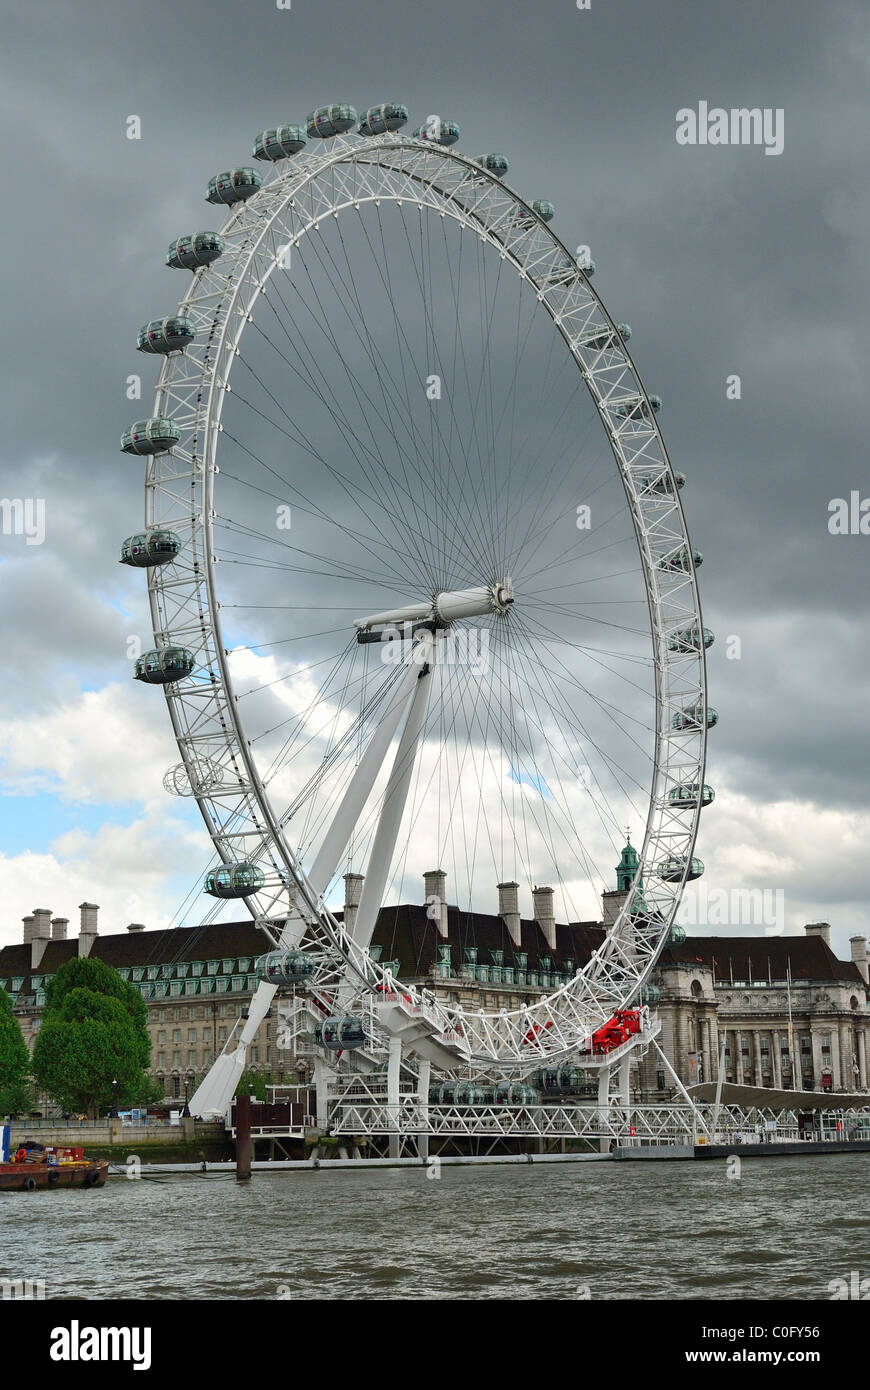 London Eye from the Thames set against a stormy dark sky - Stock Image